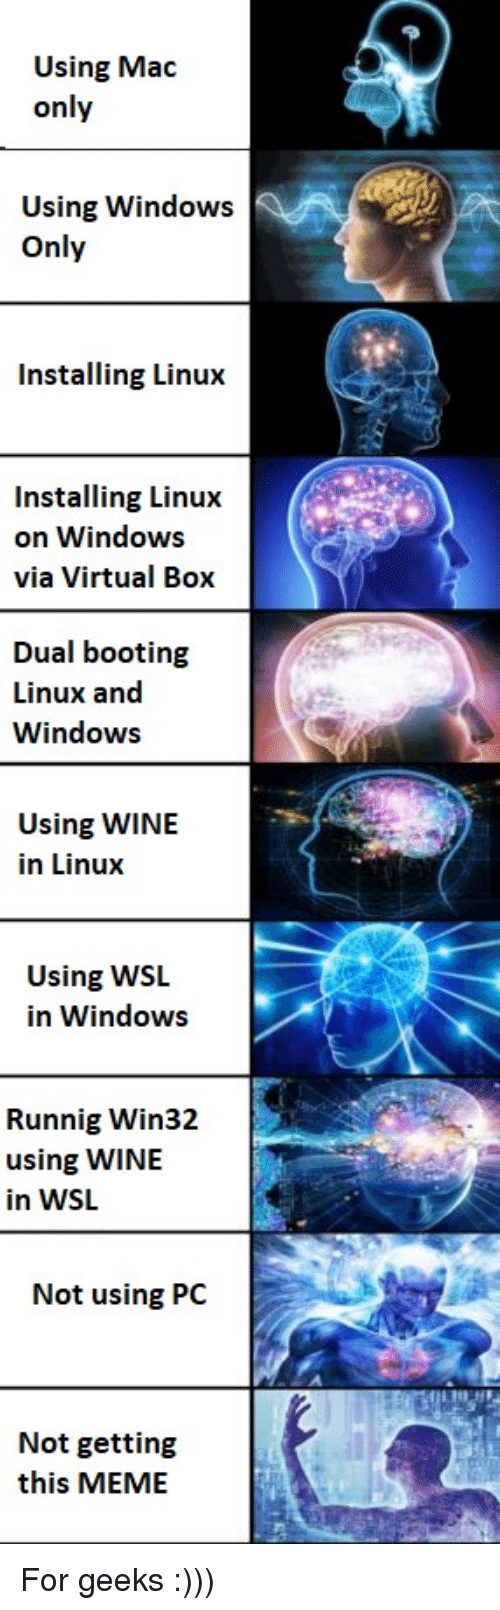 dual: Using Mac  only  Using Windows  Only  Installing Linux  Installing Linux  on Windows  via Virtual Box  Dual booting  Linux and  Windows  Using WINIE  in Linux  Using WSL  in Windows  Runnig Win32  using WINE  in WSL  Not using PC  Not getting  this MEME For geeks :)))